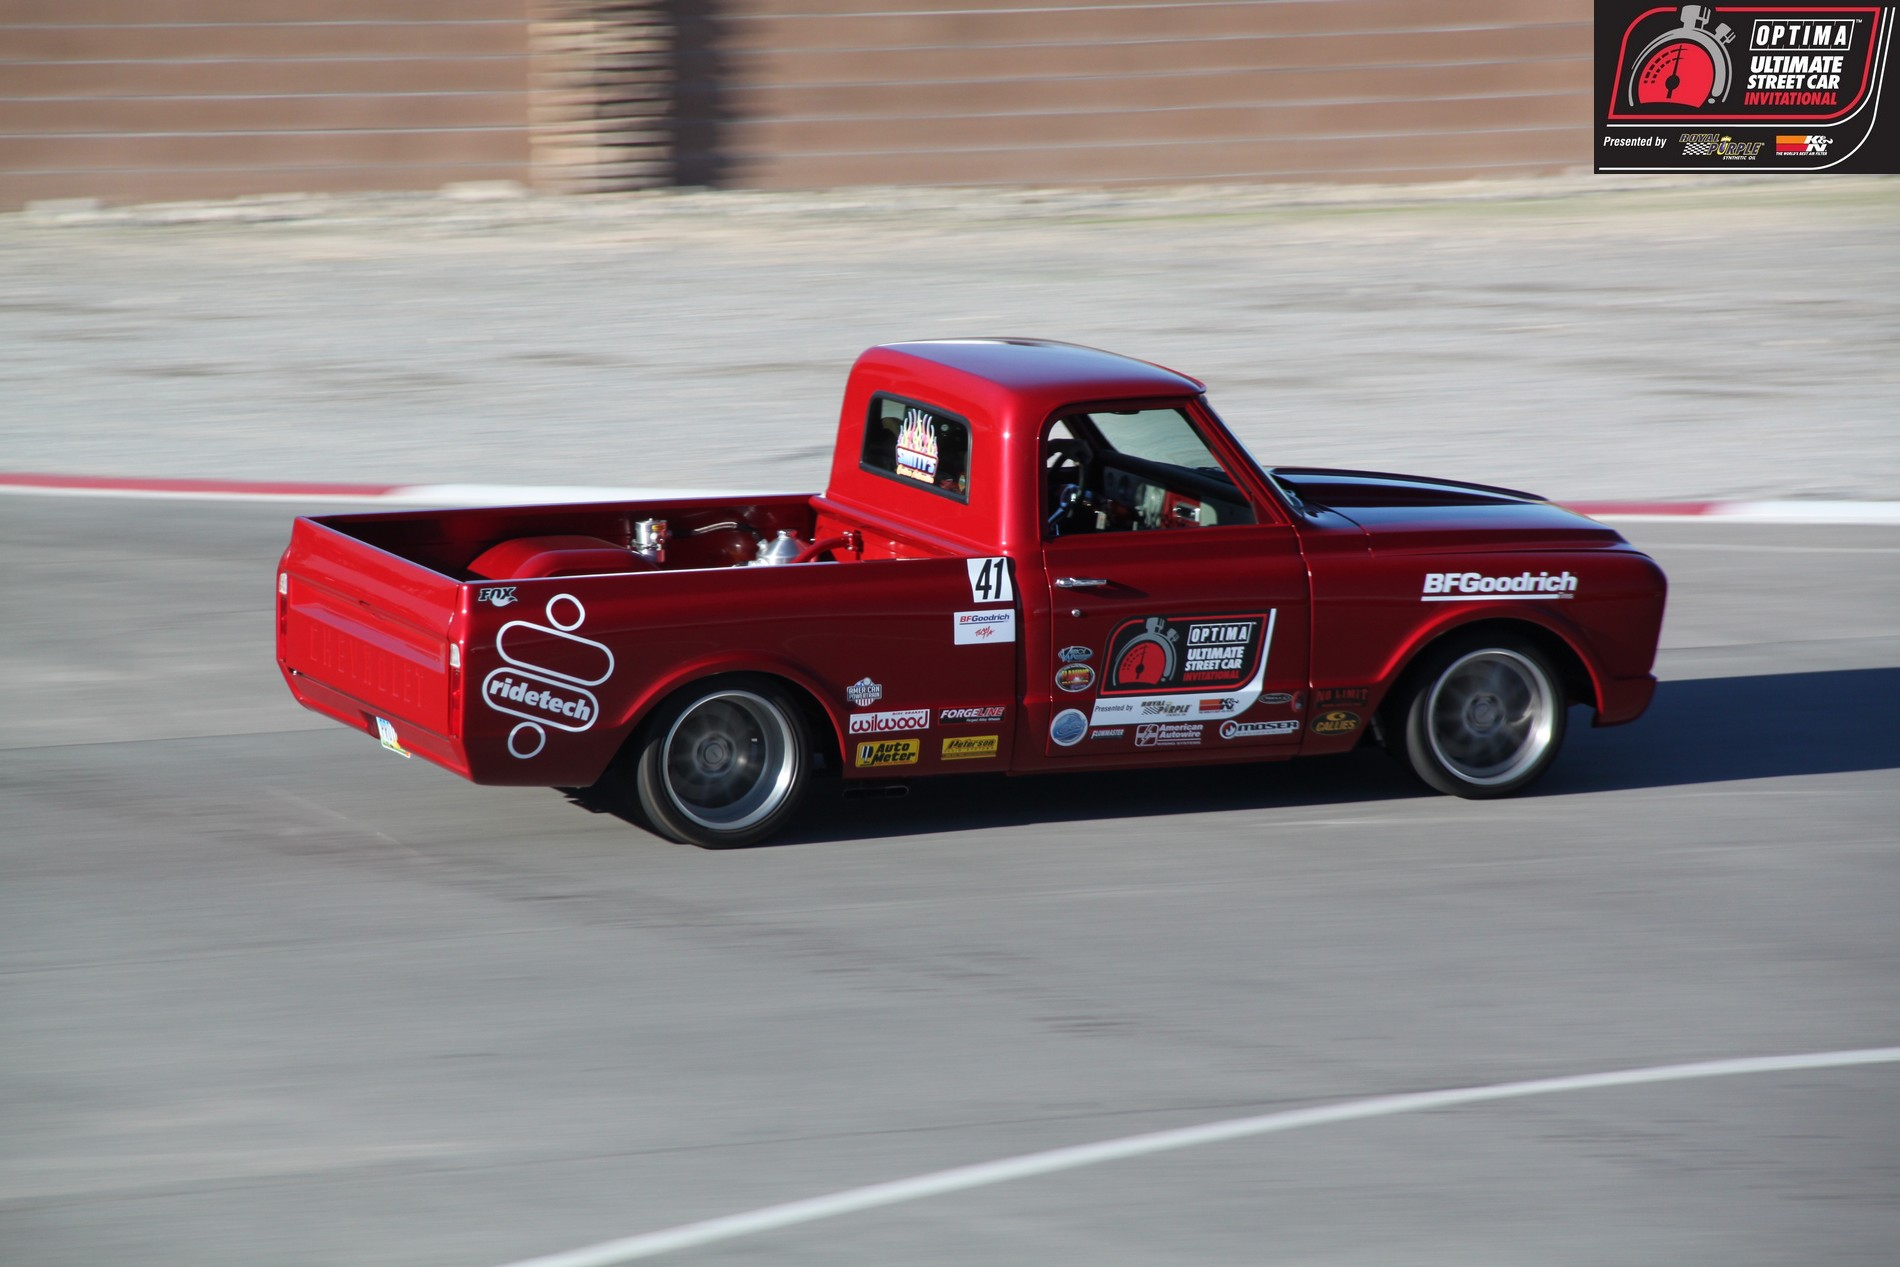 OUSCI Competitor Chris Smith's 1967 Chevy C10 Pickup